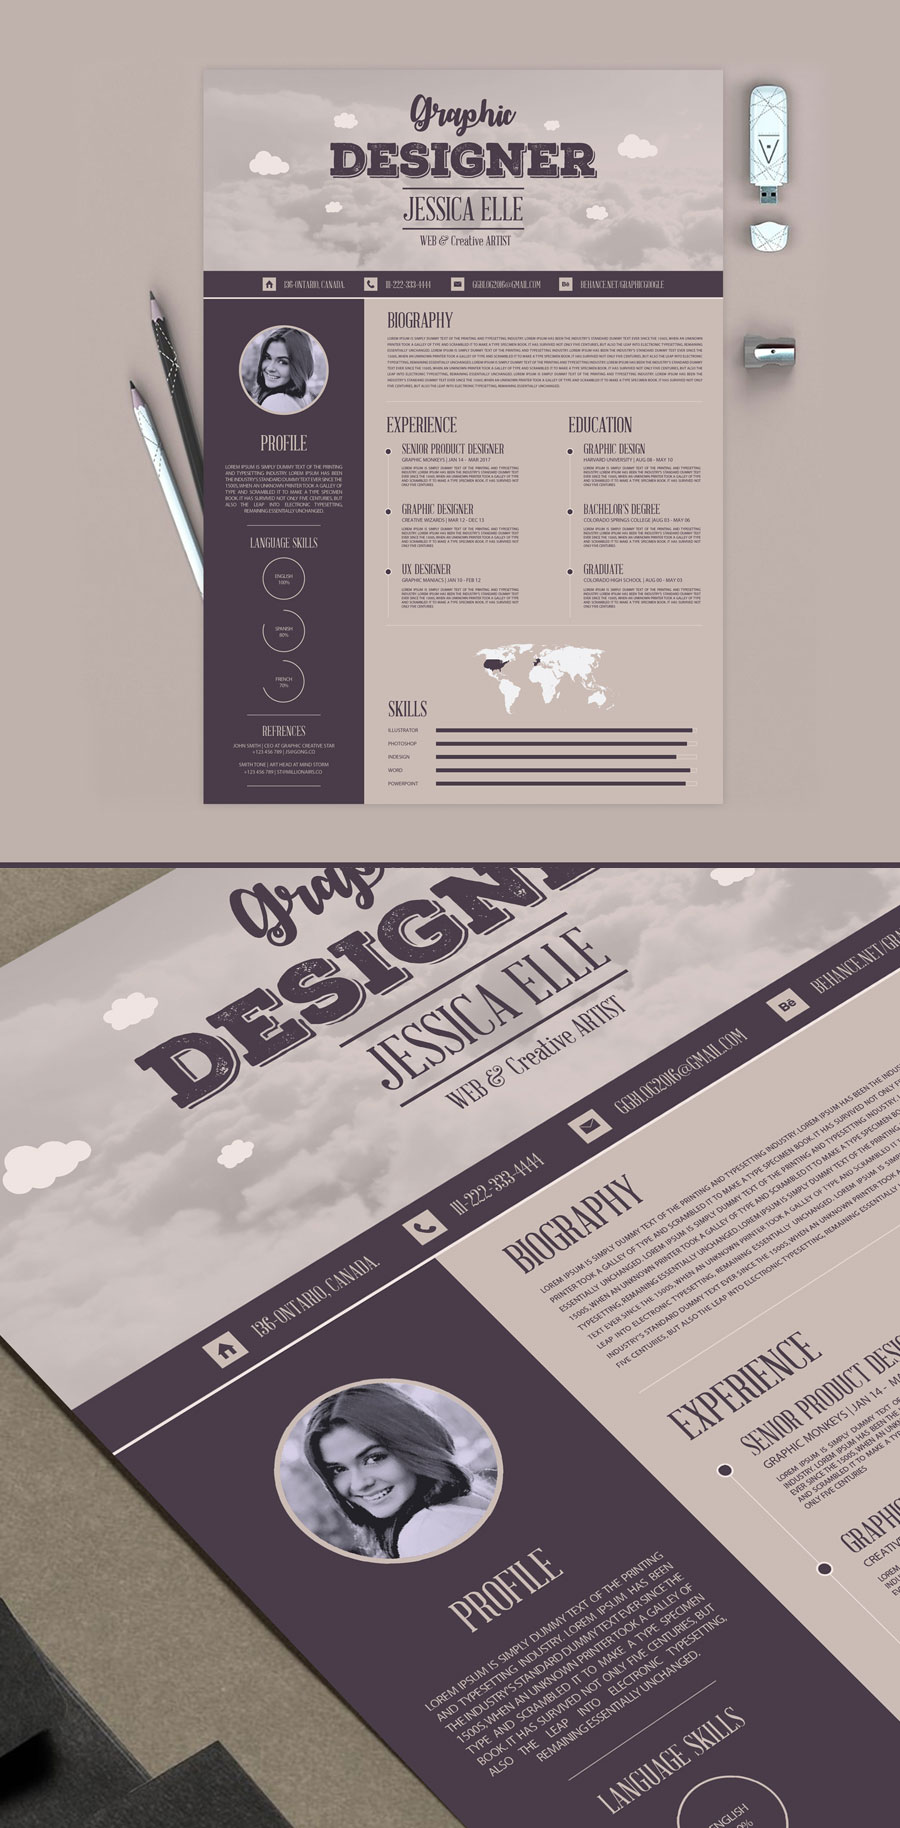 Free-Creative-Vintage-Resume-Design-Template